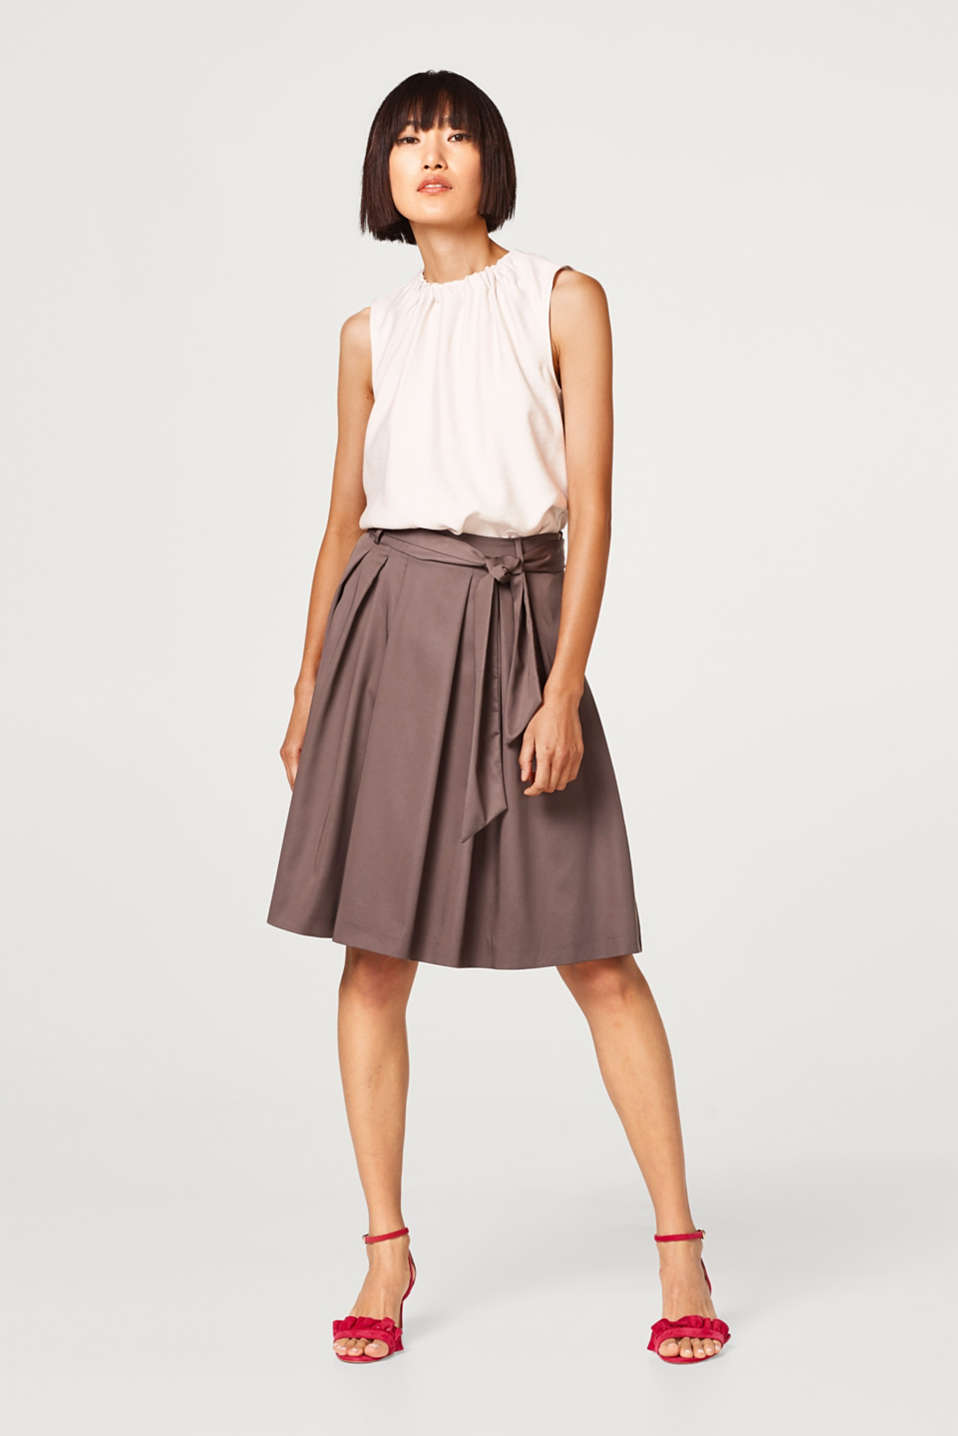 Flared, swirling skirt with lyocell and a bow